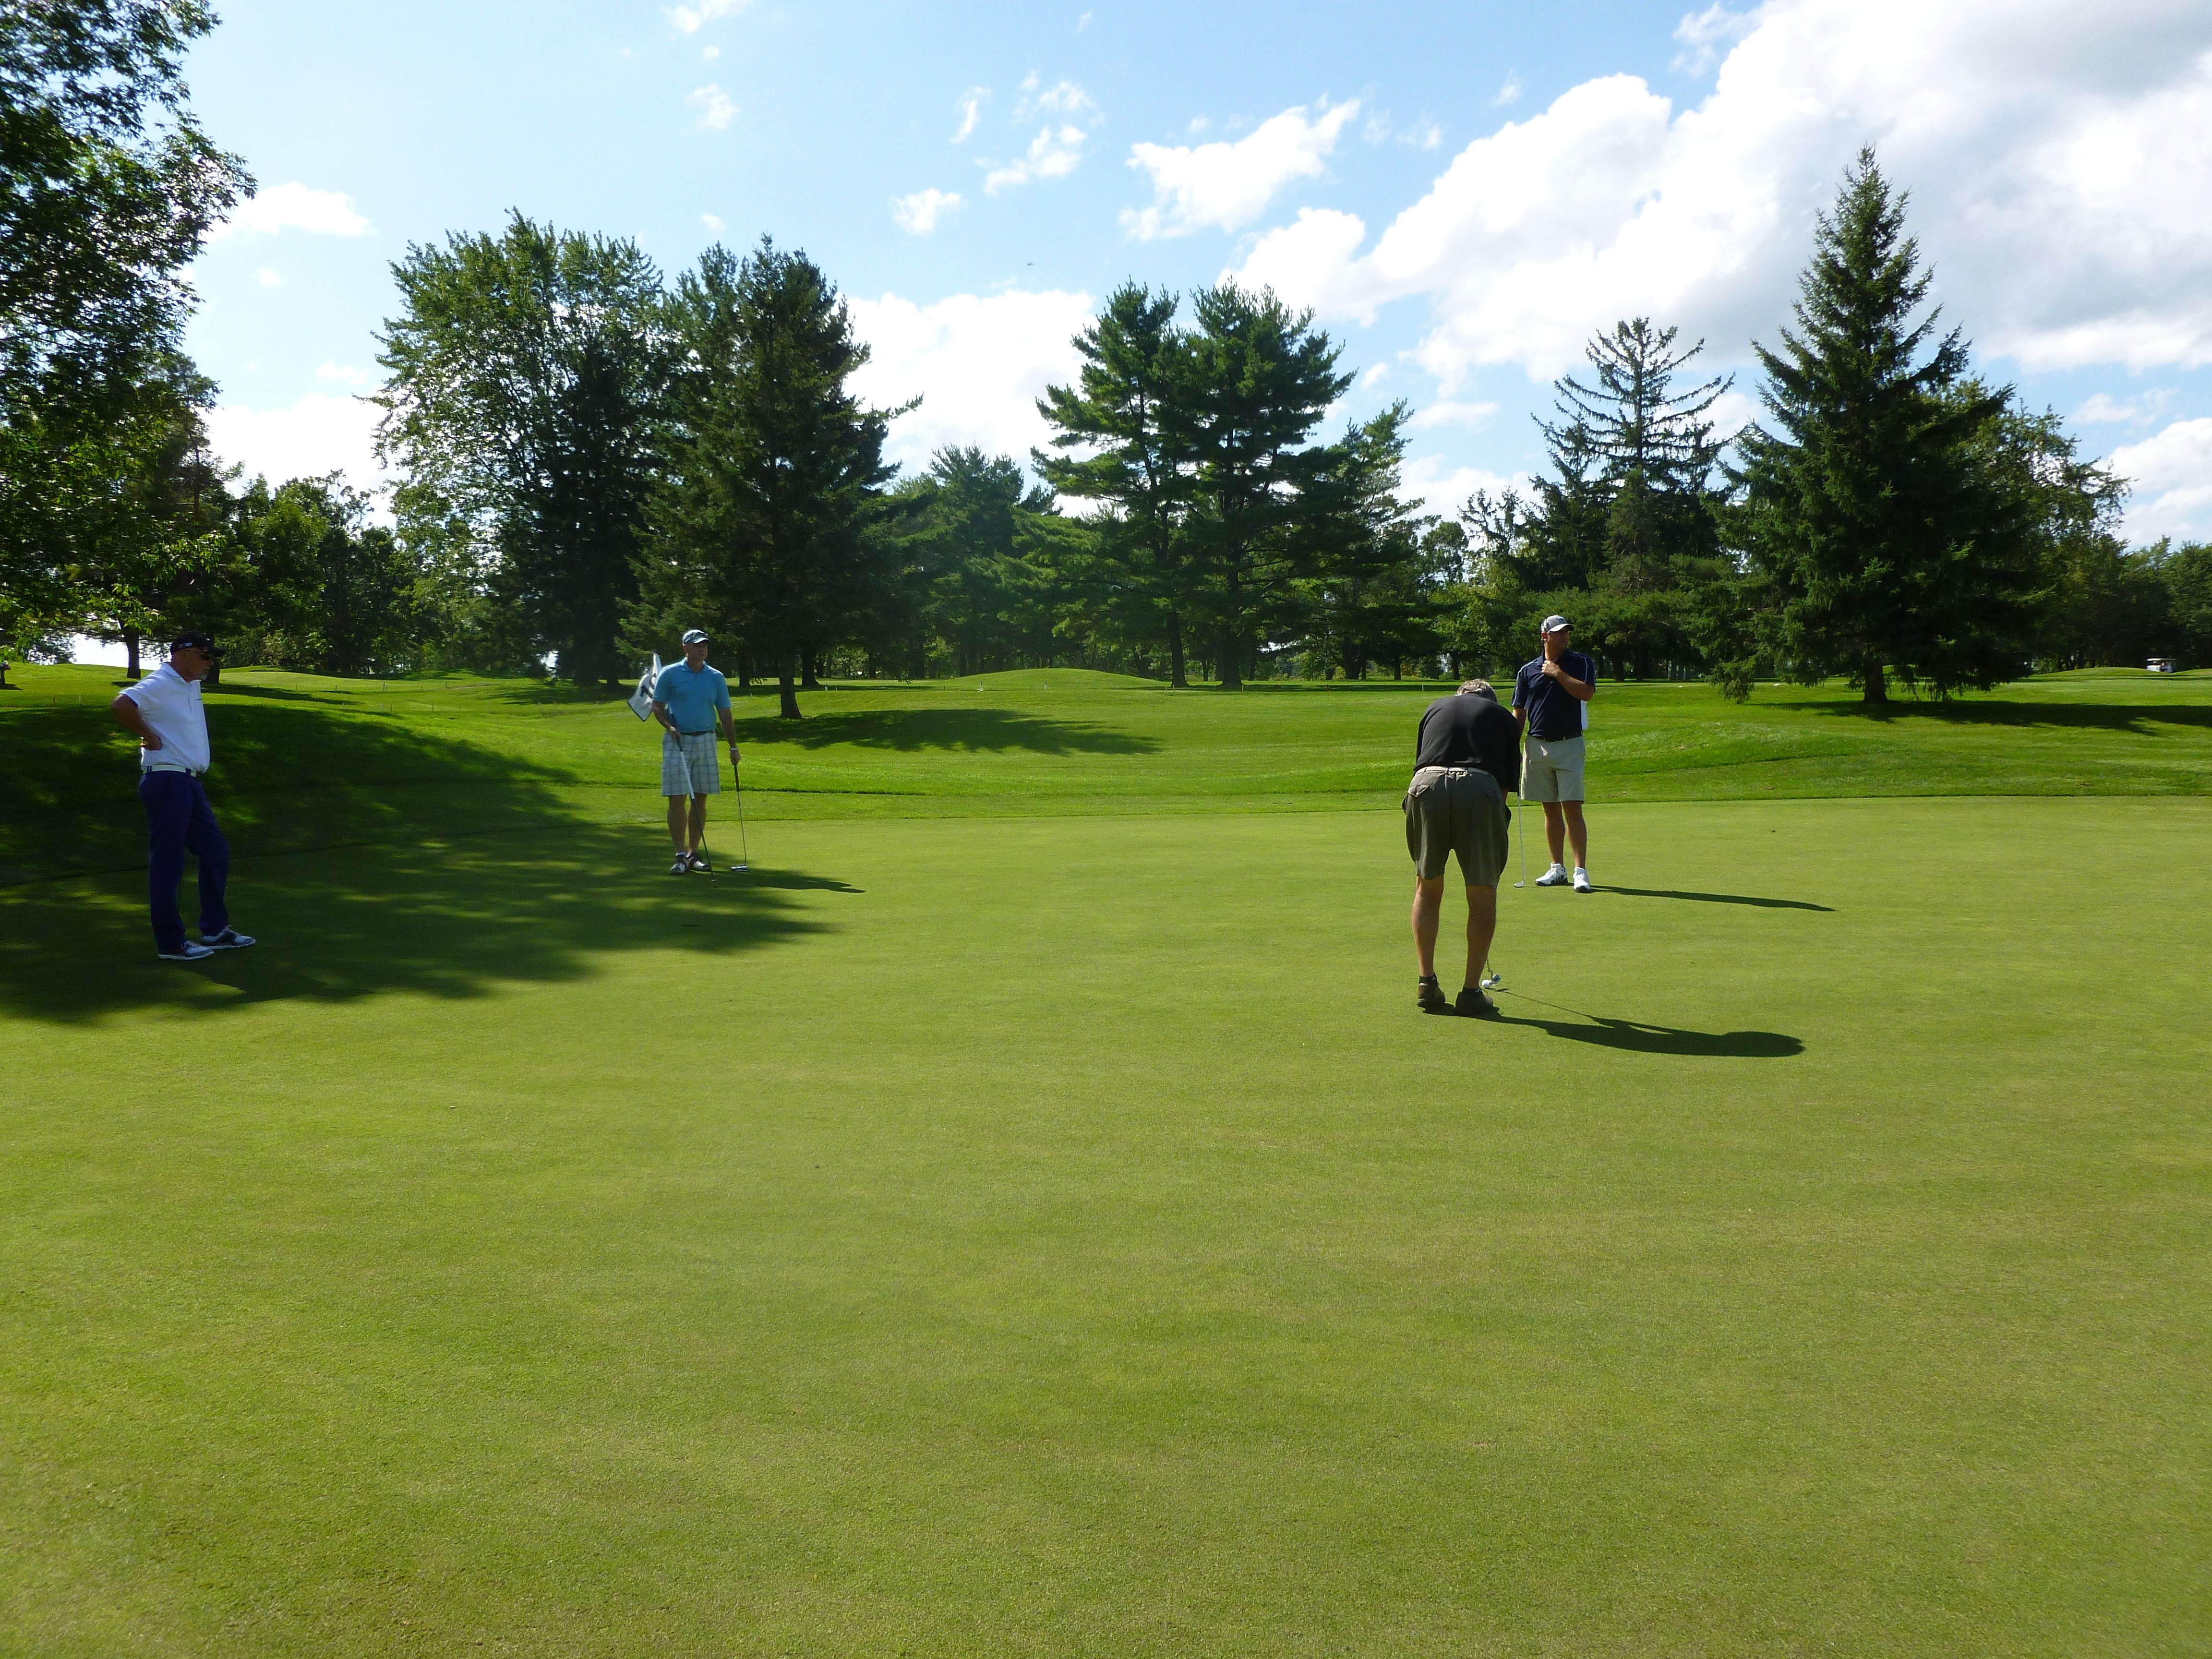 RE/MAX Hallmark's 20th Annual Golf Tourney on Aug 20th @ Meadowbrook.